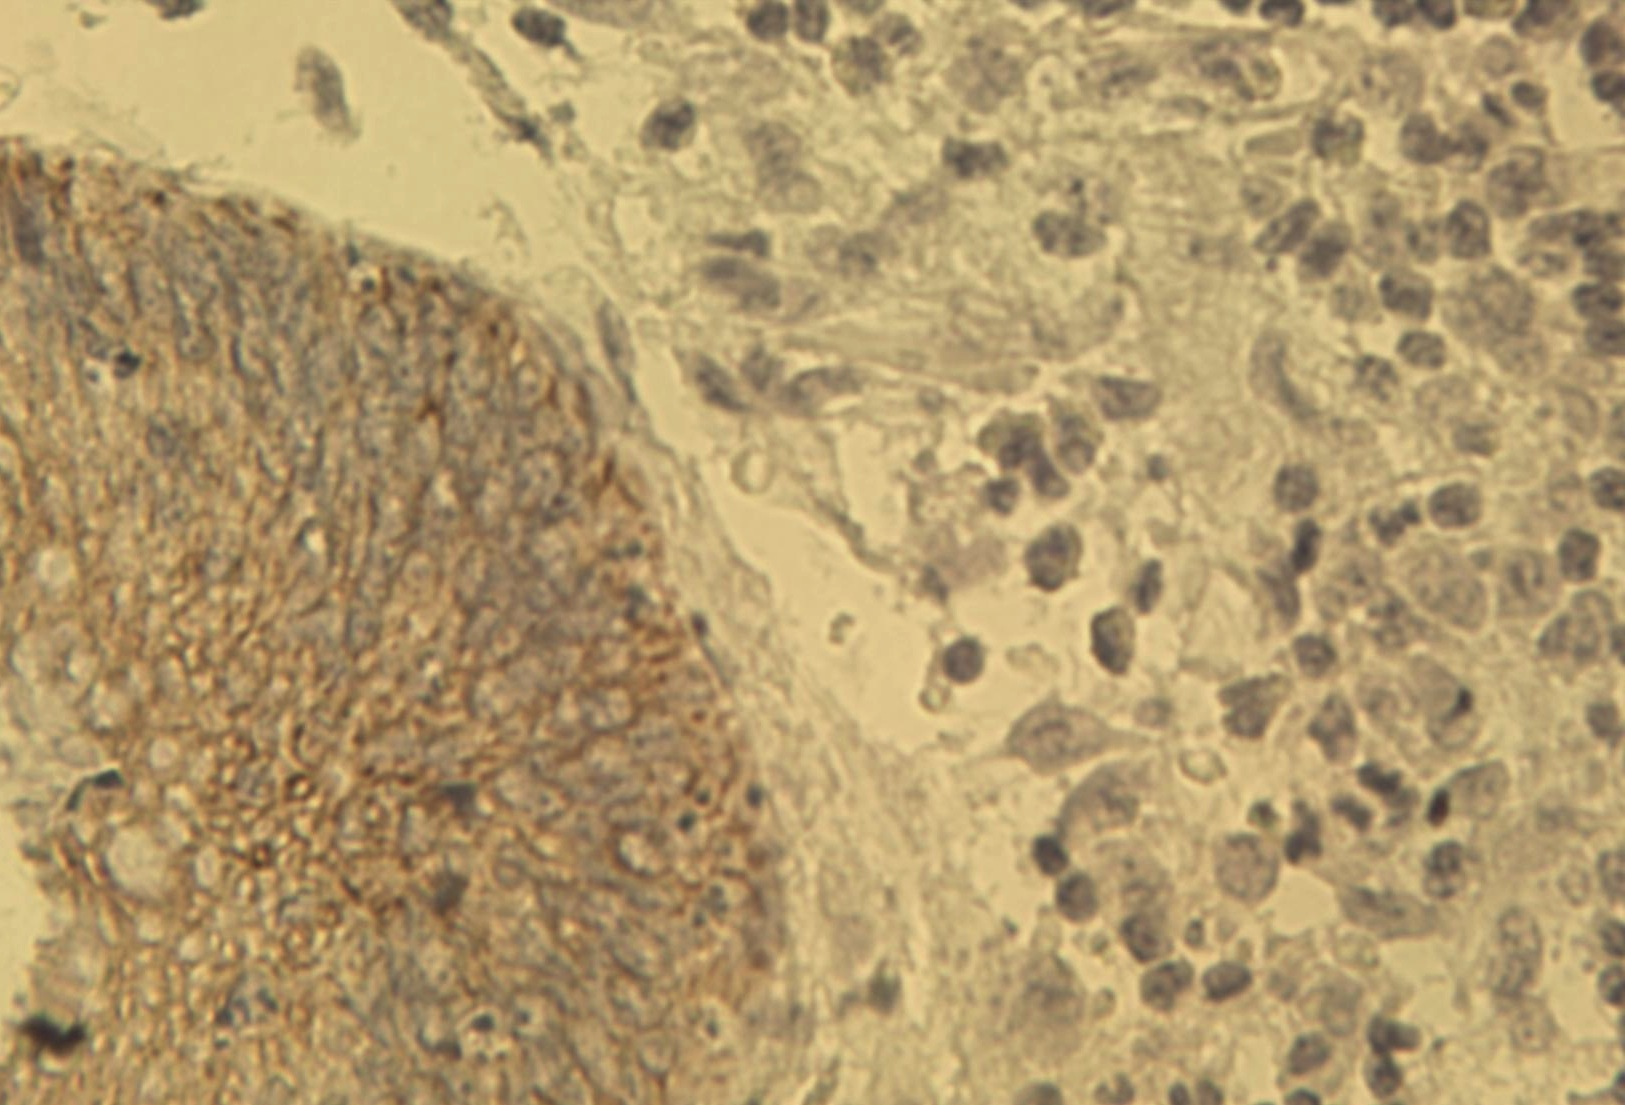 Figure 1. Immunohistochemical staining of human colon cancer tissue using pan Keratin antibody (Cat. No. X1260M) at 2.5 μg/ml.